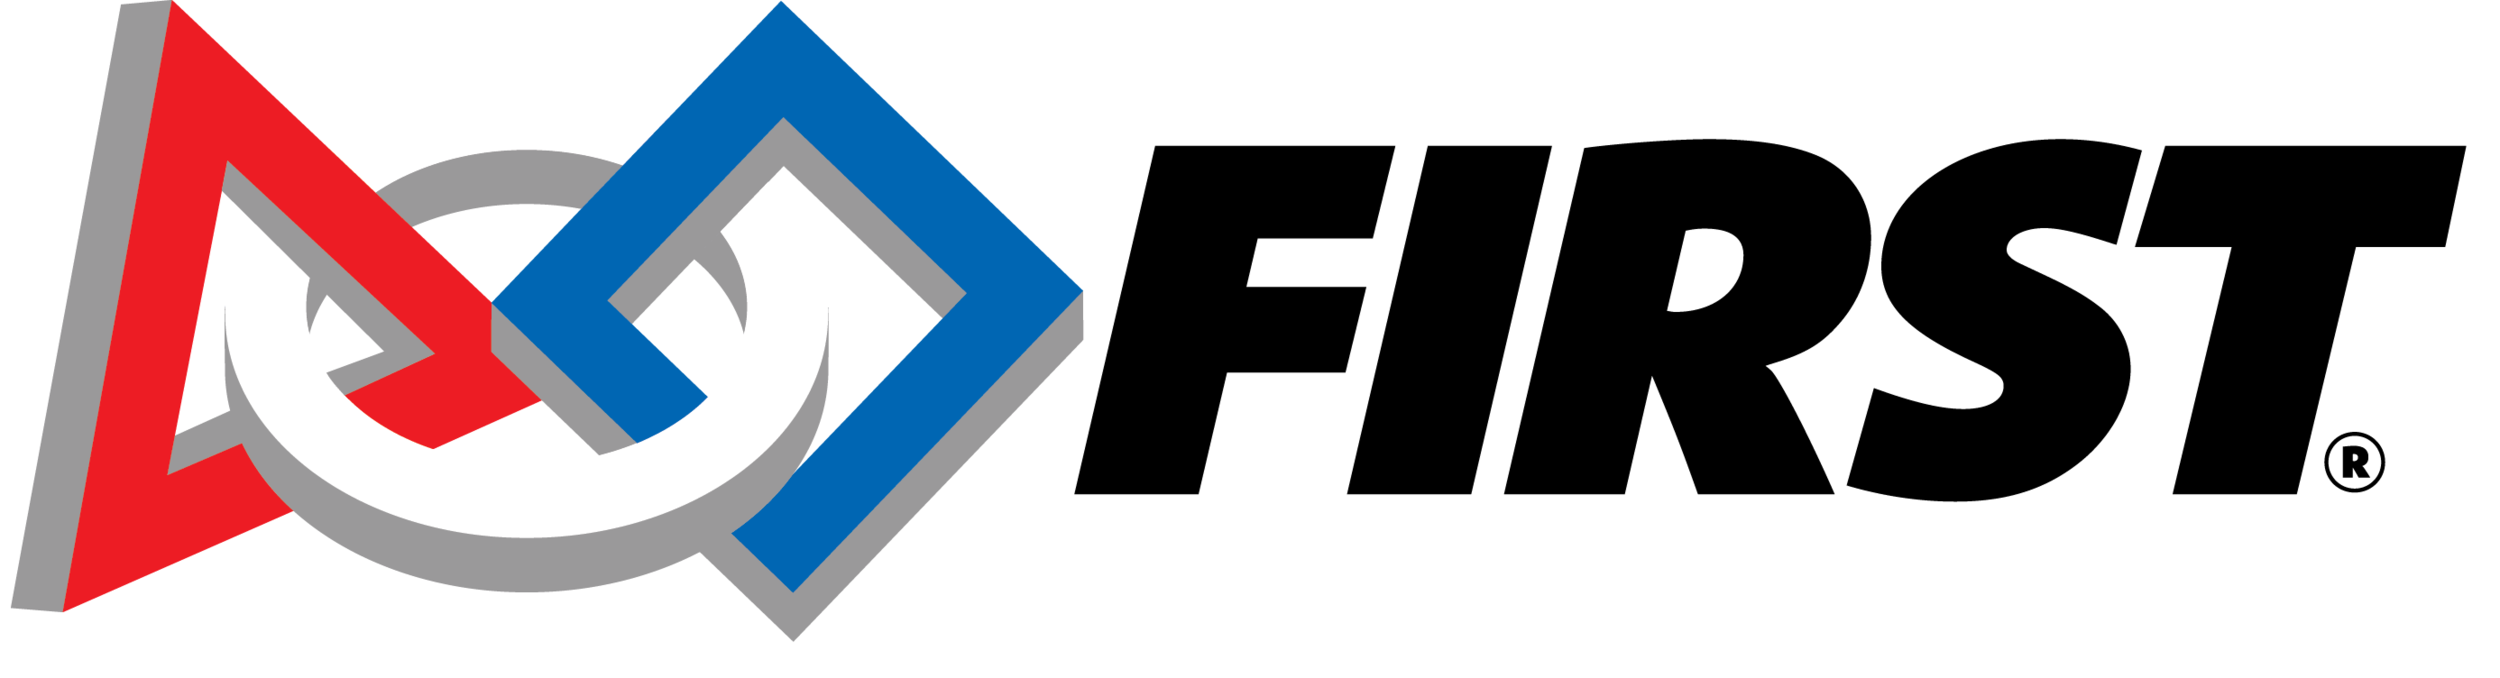 firstLogo.png